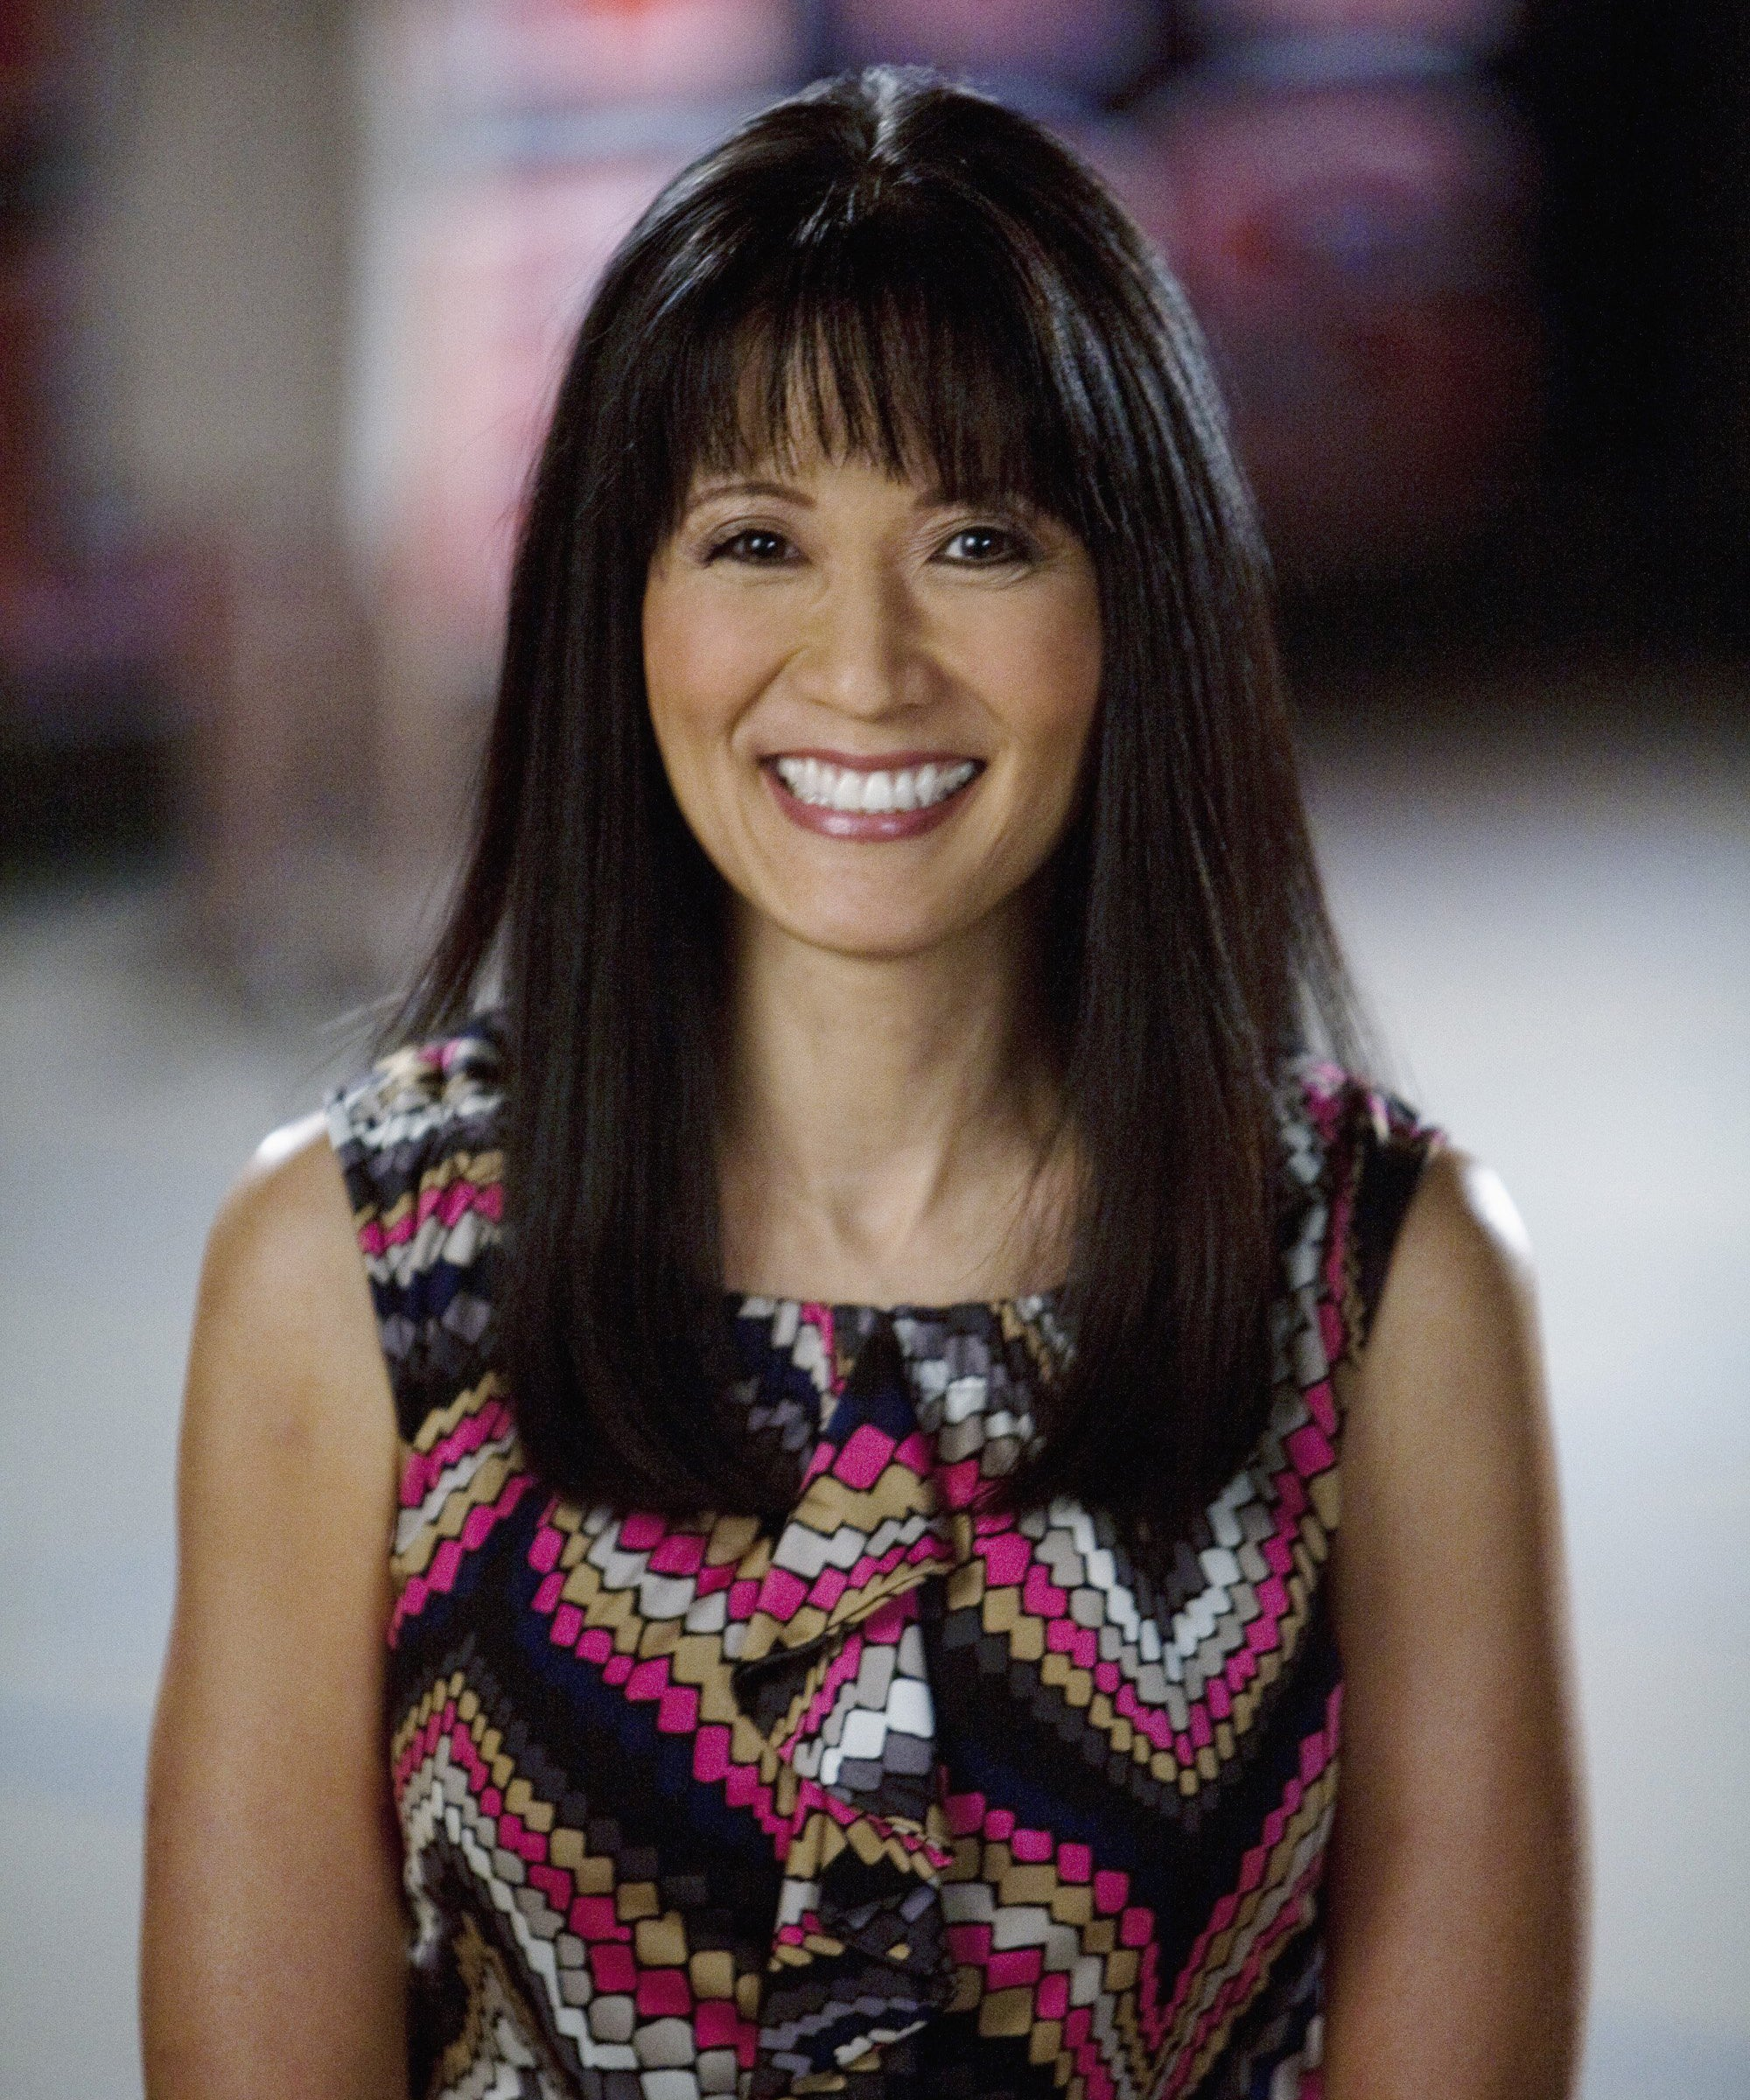 House Hunters' Host Suzanne Whang Has Died